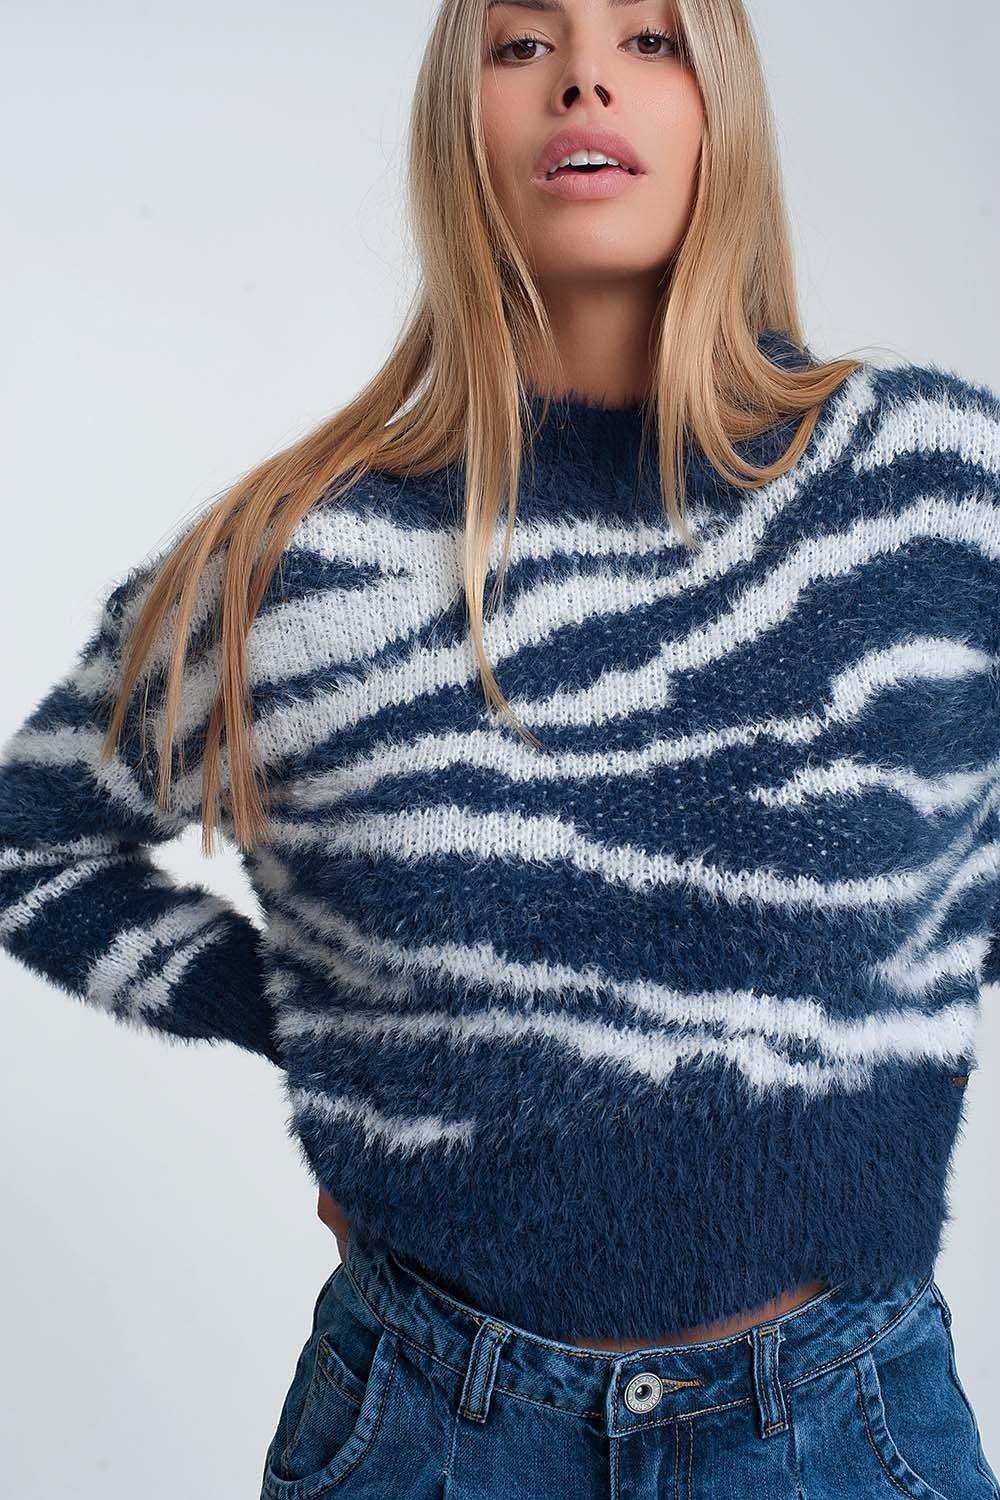 Q2 Fluffy high neck sweater with stripes in blue